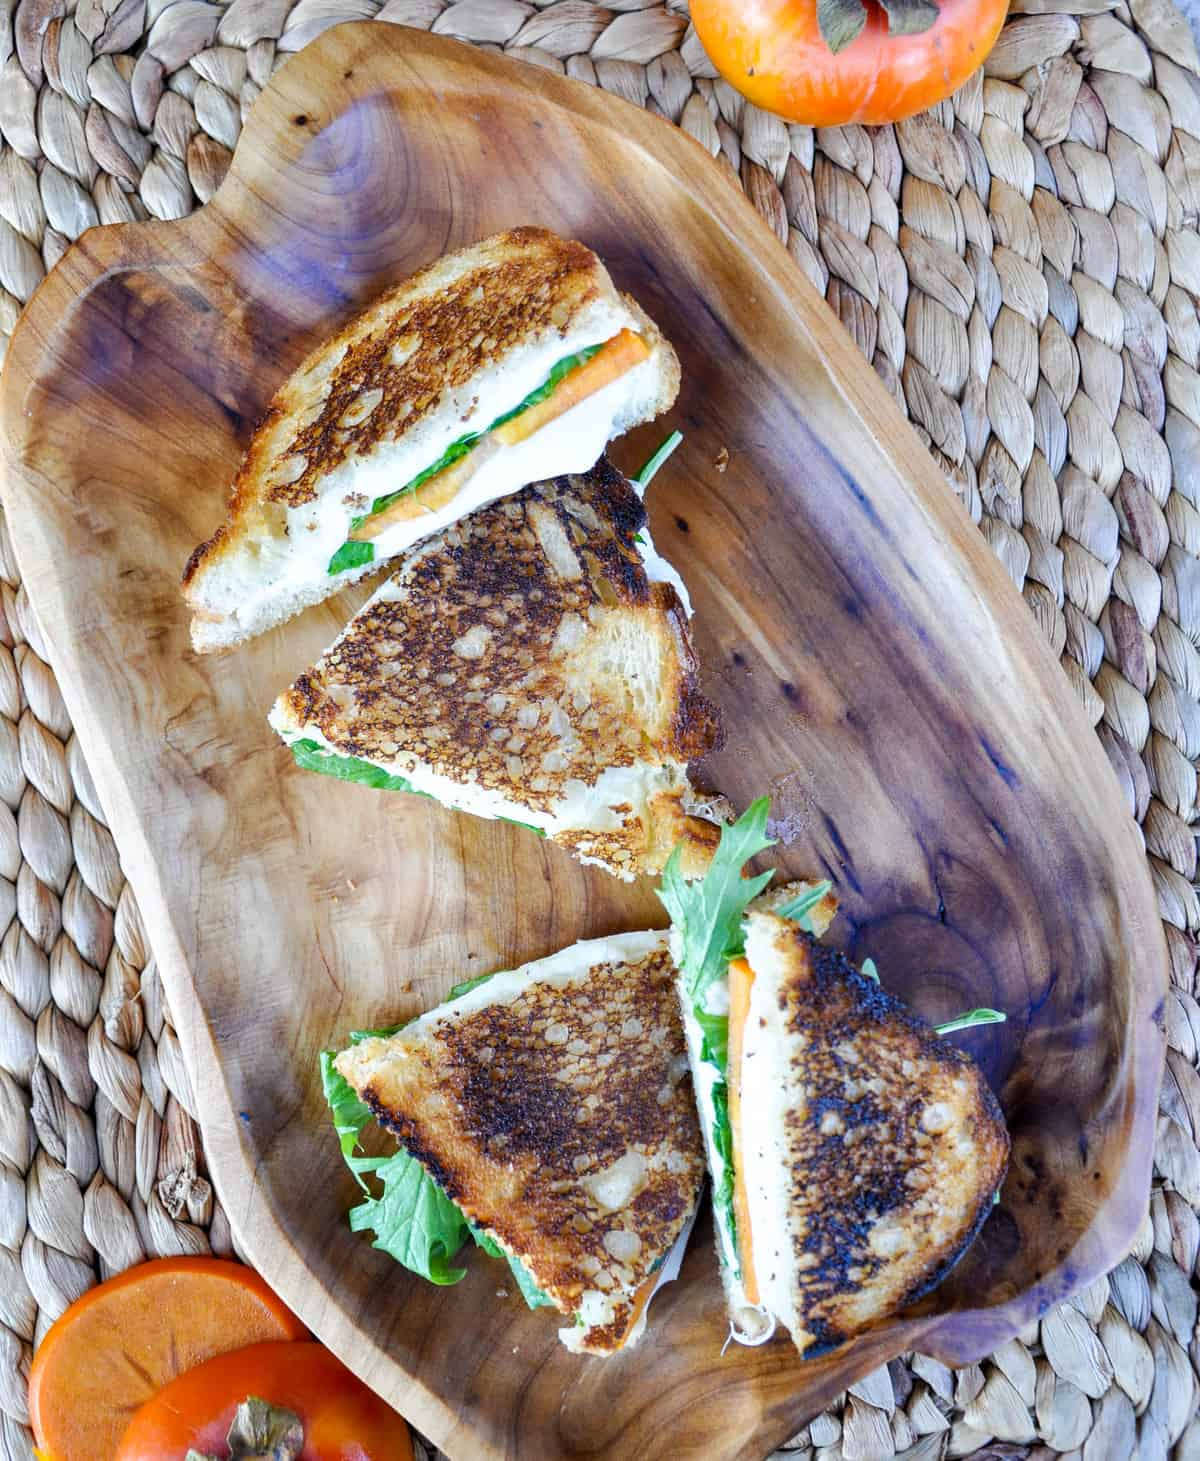 Persimmon Grilled Cheese